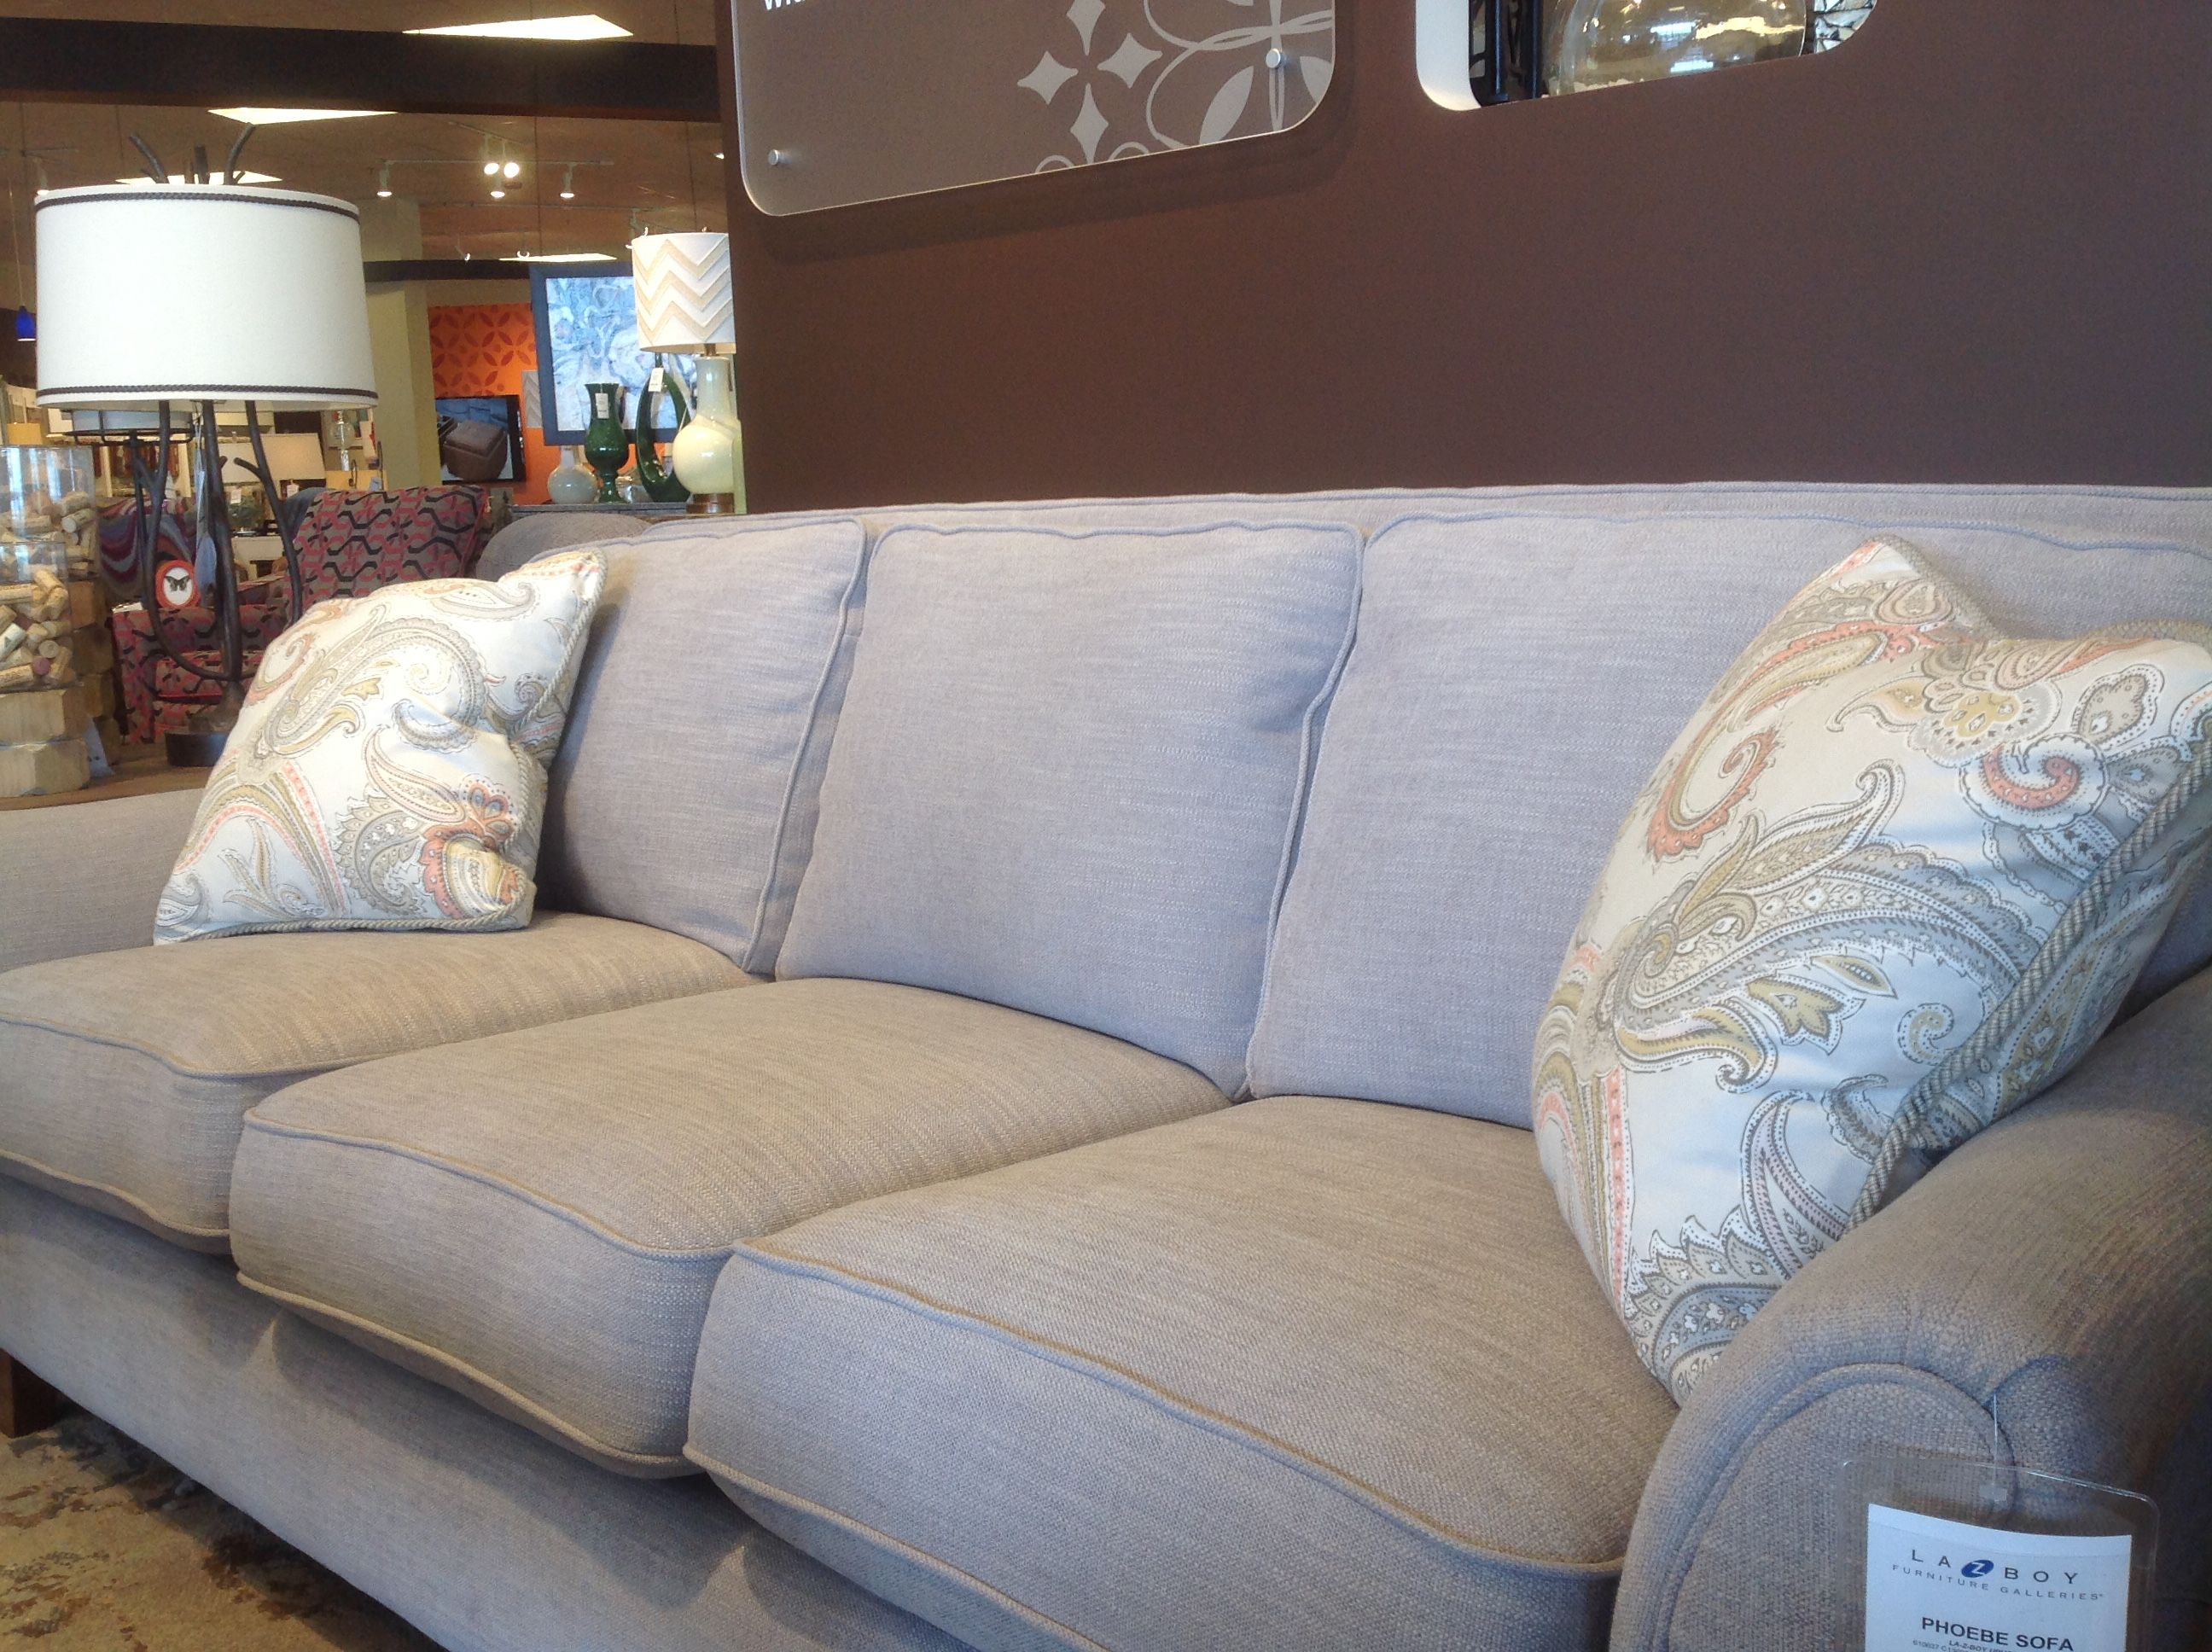 This A Photo Of The Phoebe Sofa At Lazy Boy Showroom Os Lazy Boy Sofas Lazy Boy Furniture Sofa